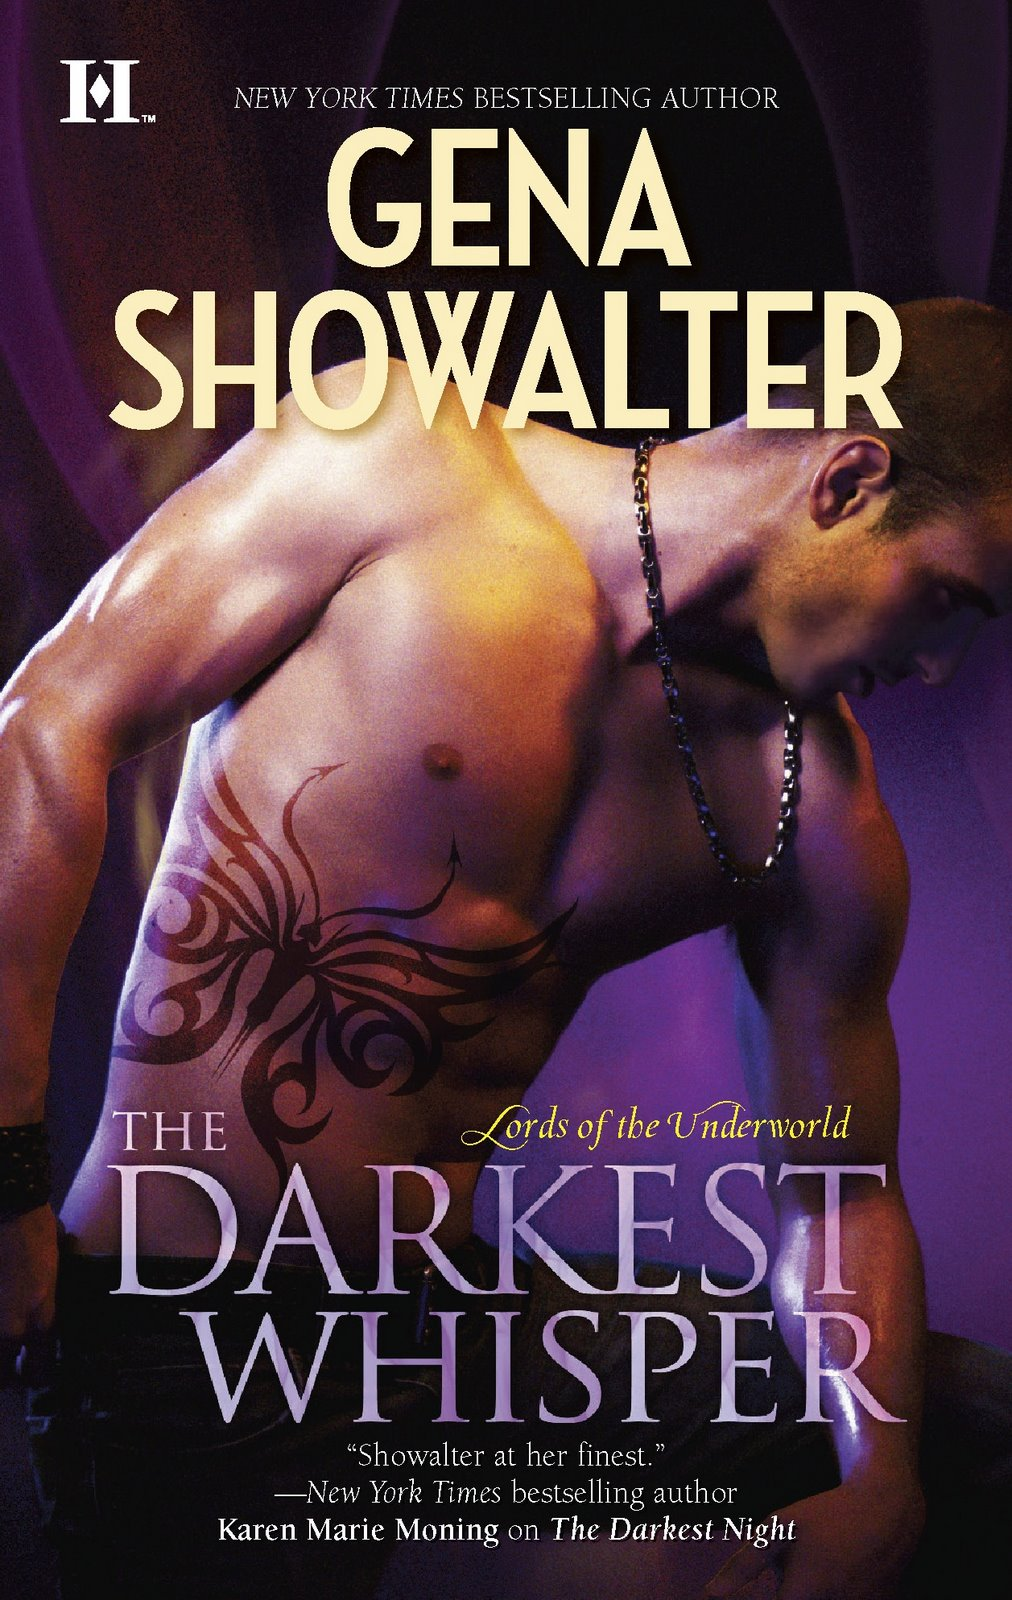 http://bookishtemptations.files.wordpress.com/2012/05/the-darkest-whisper.jpg